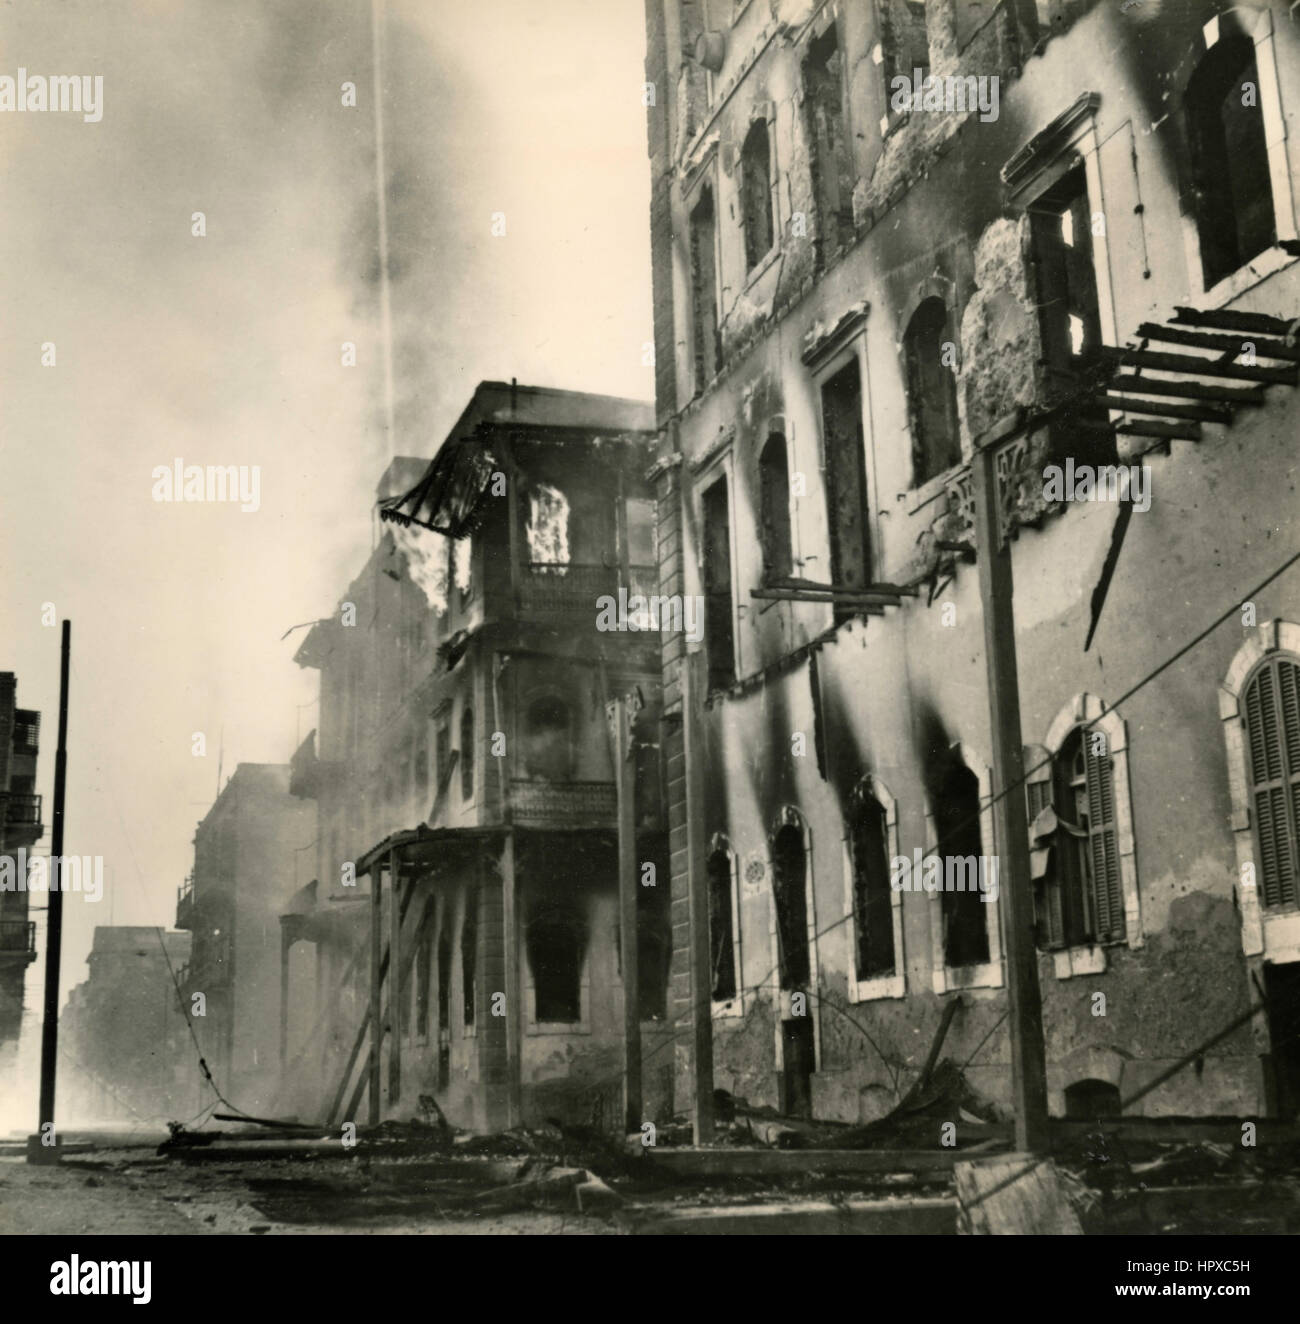 The buildings in Suez after bombing, Egypt 1956 - Stock Image